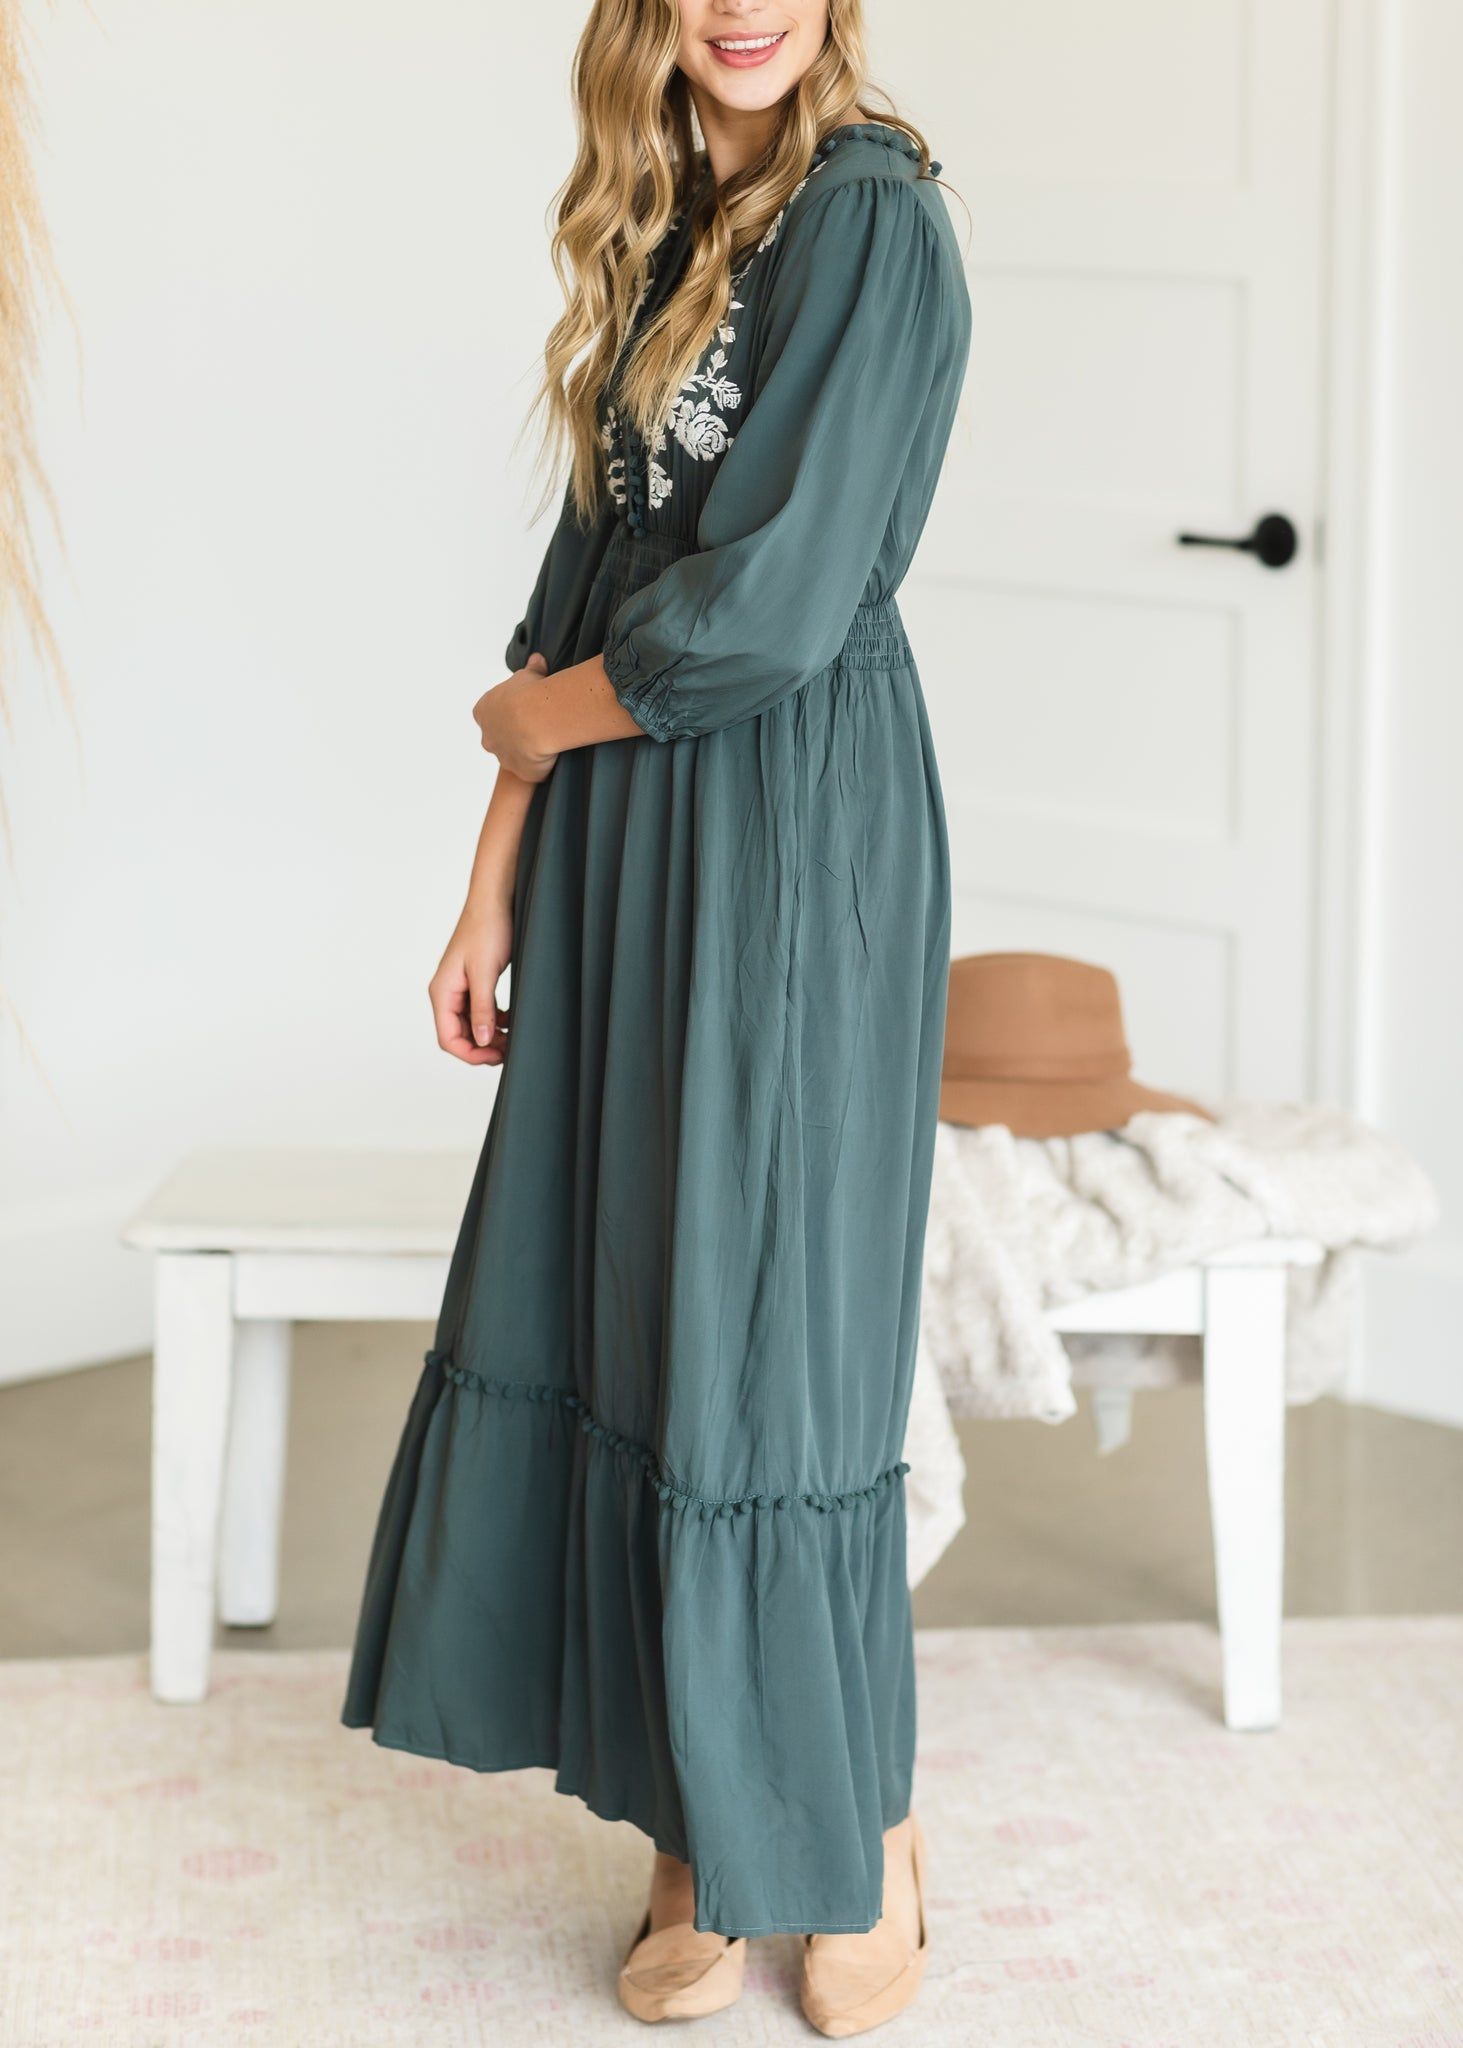 Teal Pom Pom Embroidered Maxi Dress